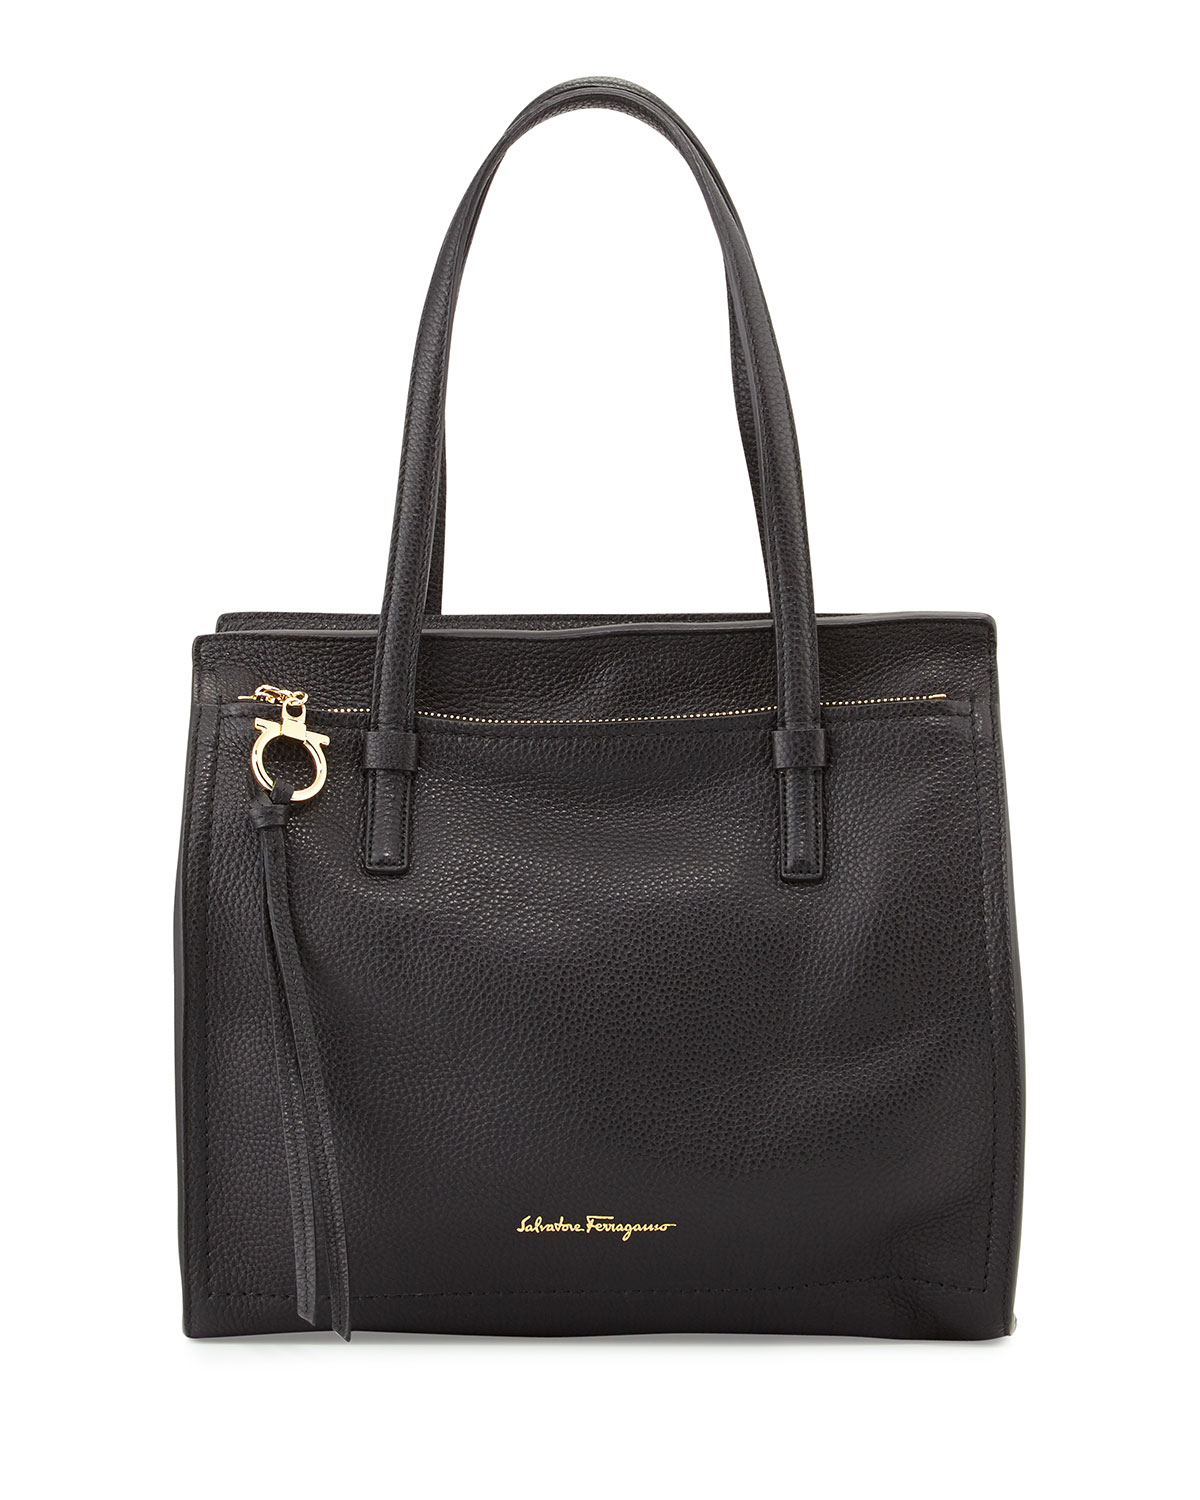 6d0f7f9552d7 Salvatore Ferragamo Medium Leather Tote Bag